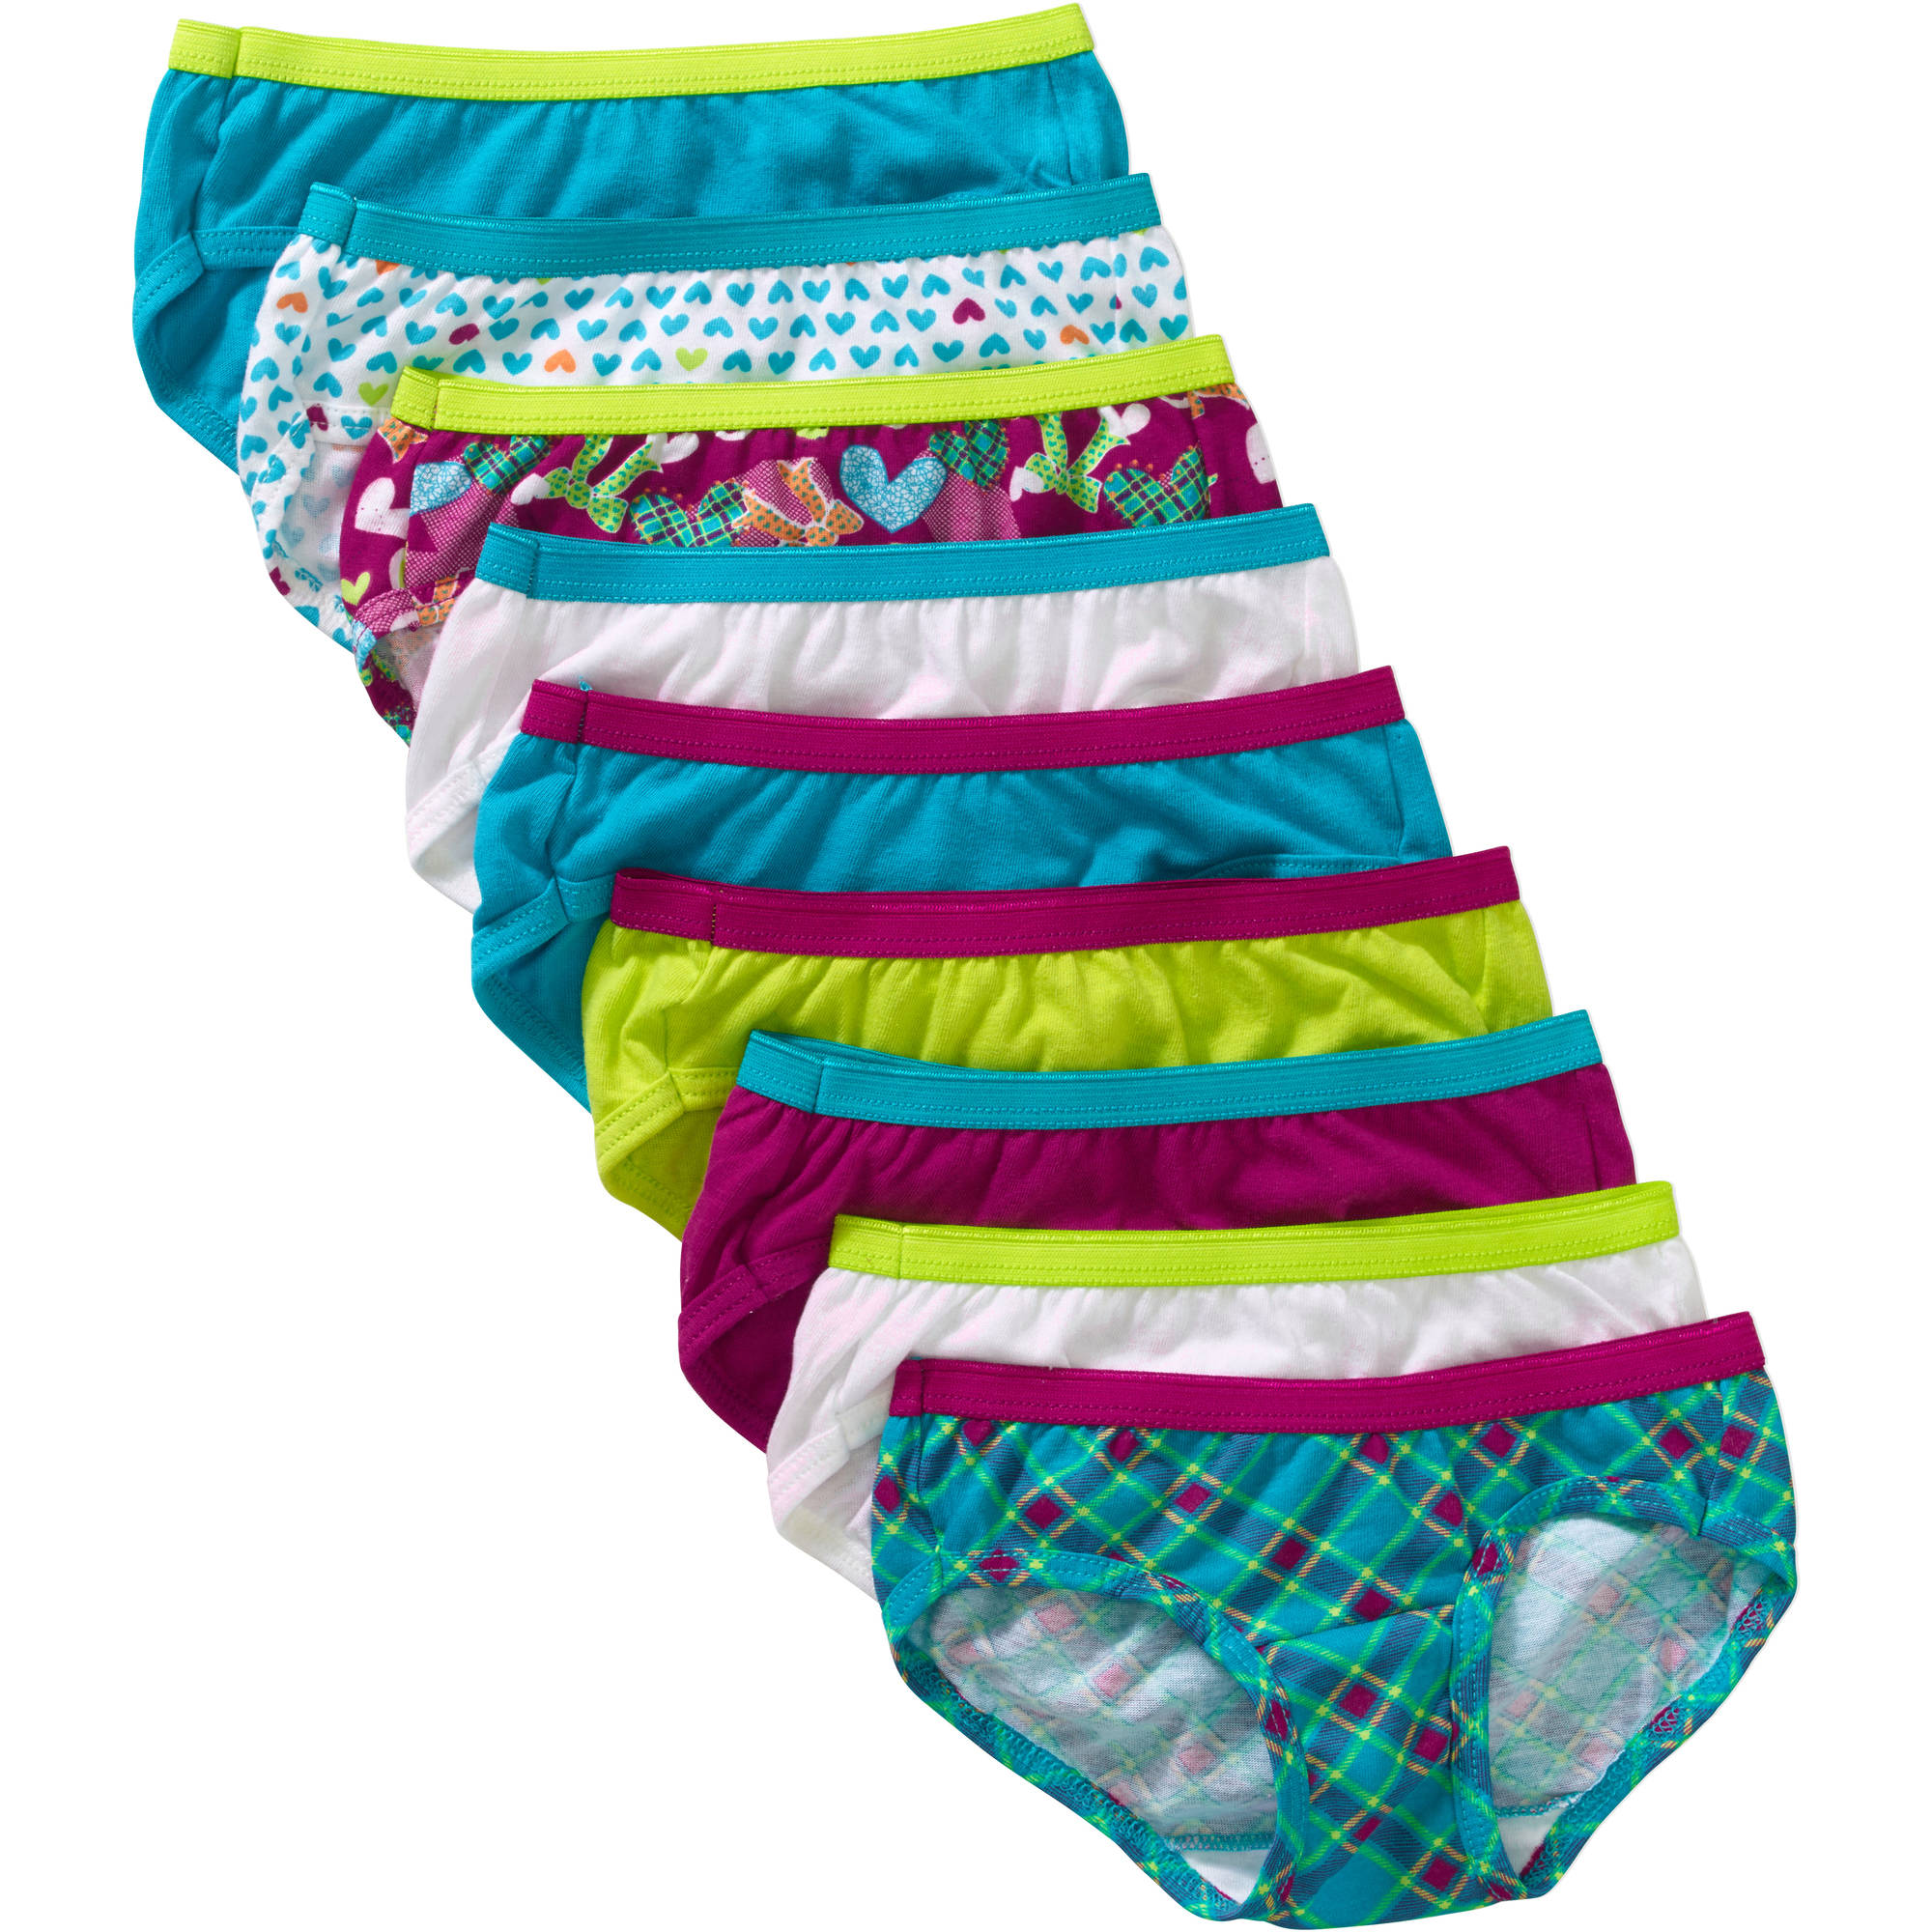 Hanes Girls' Assorted No Ride Up Cotton Hipster Panties 9 Pack